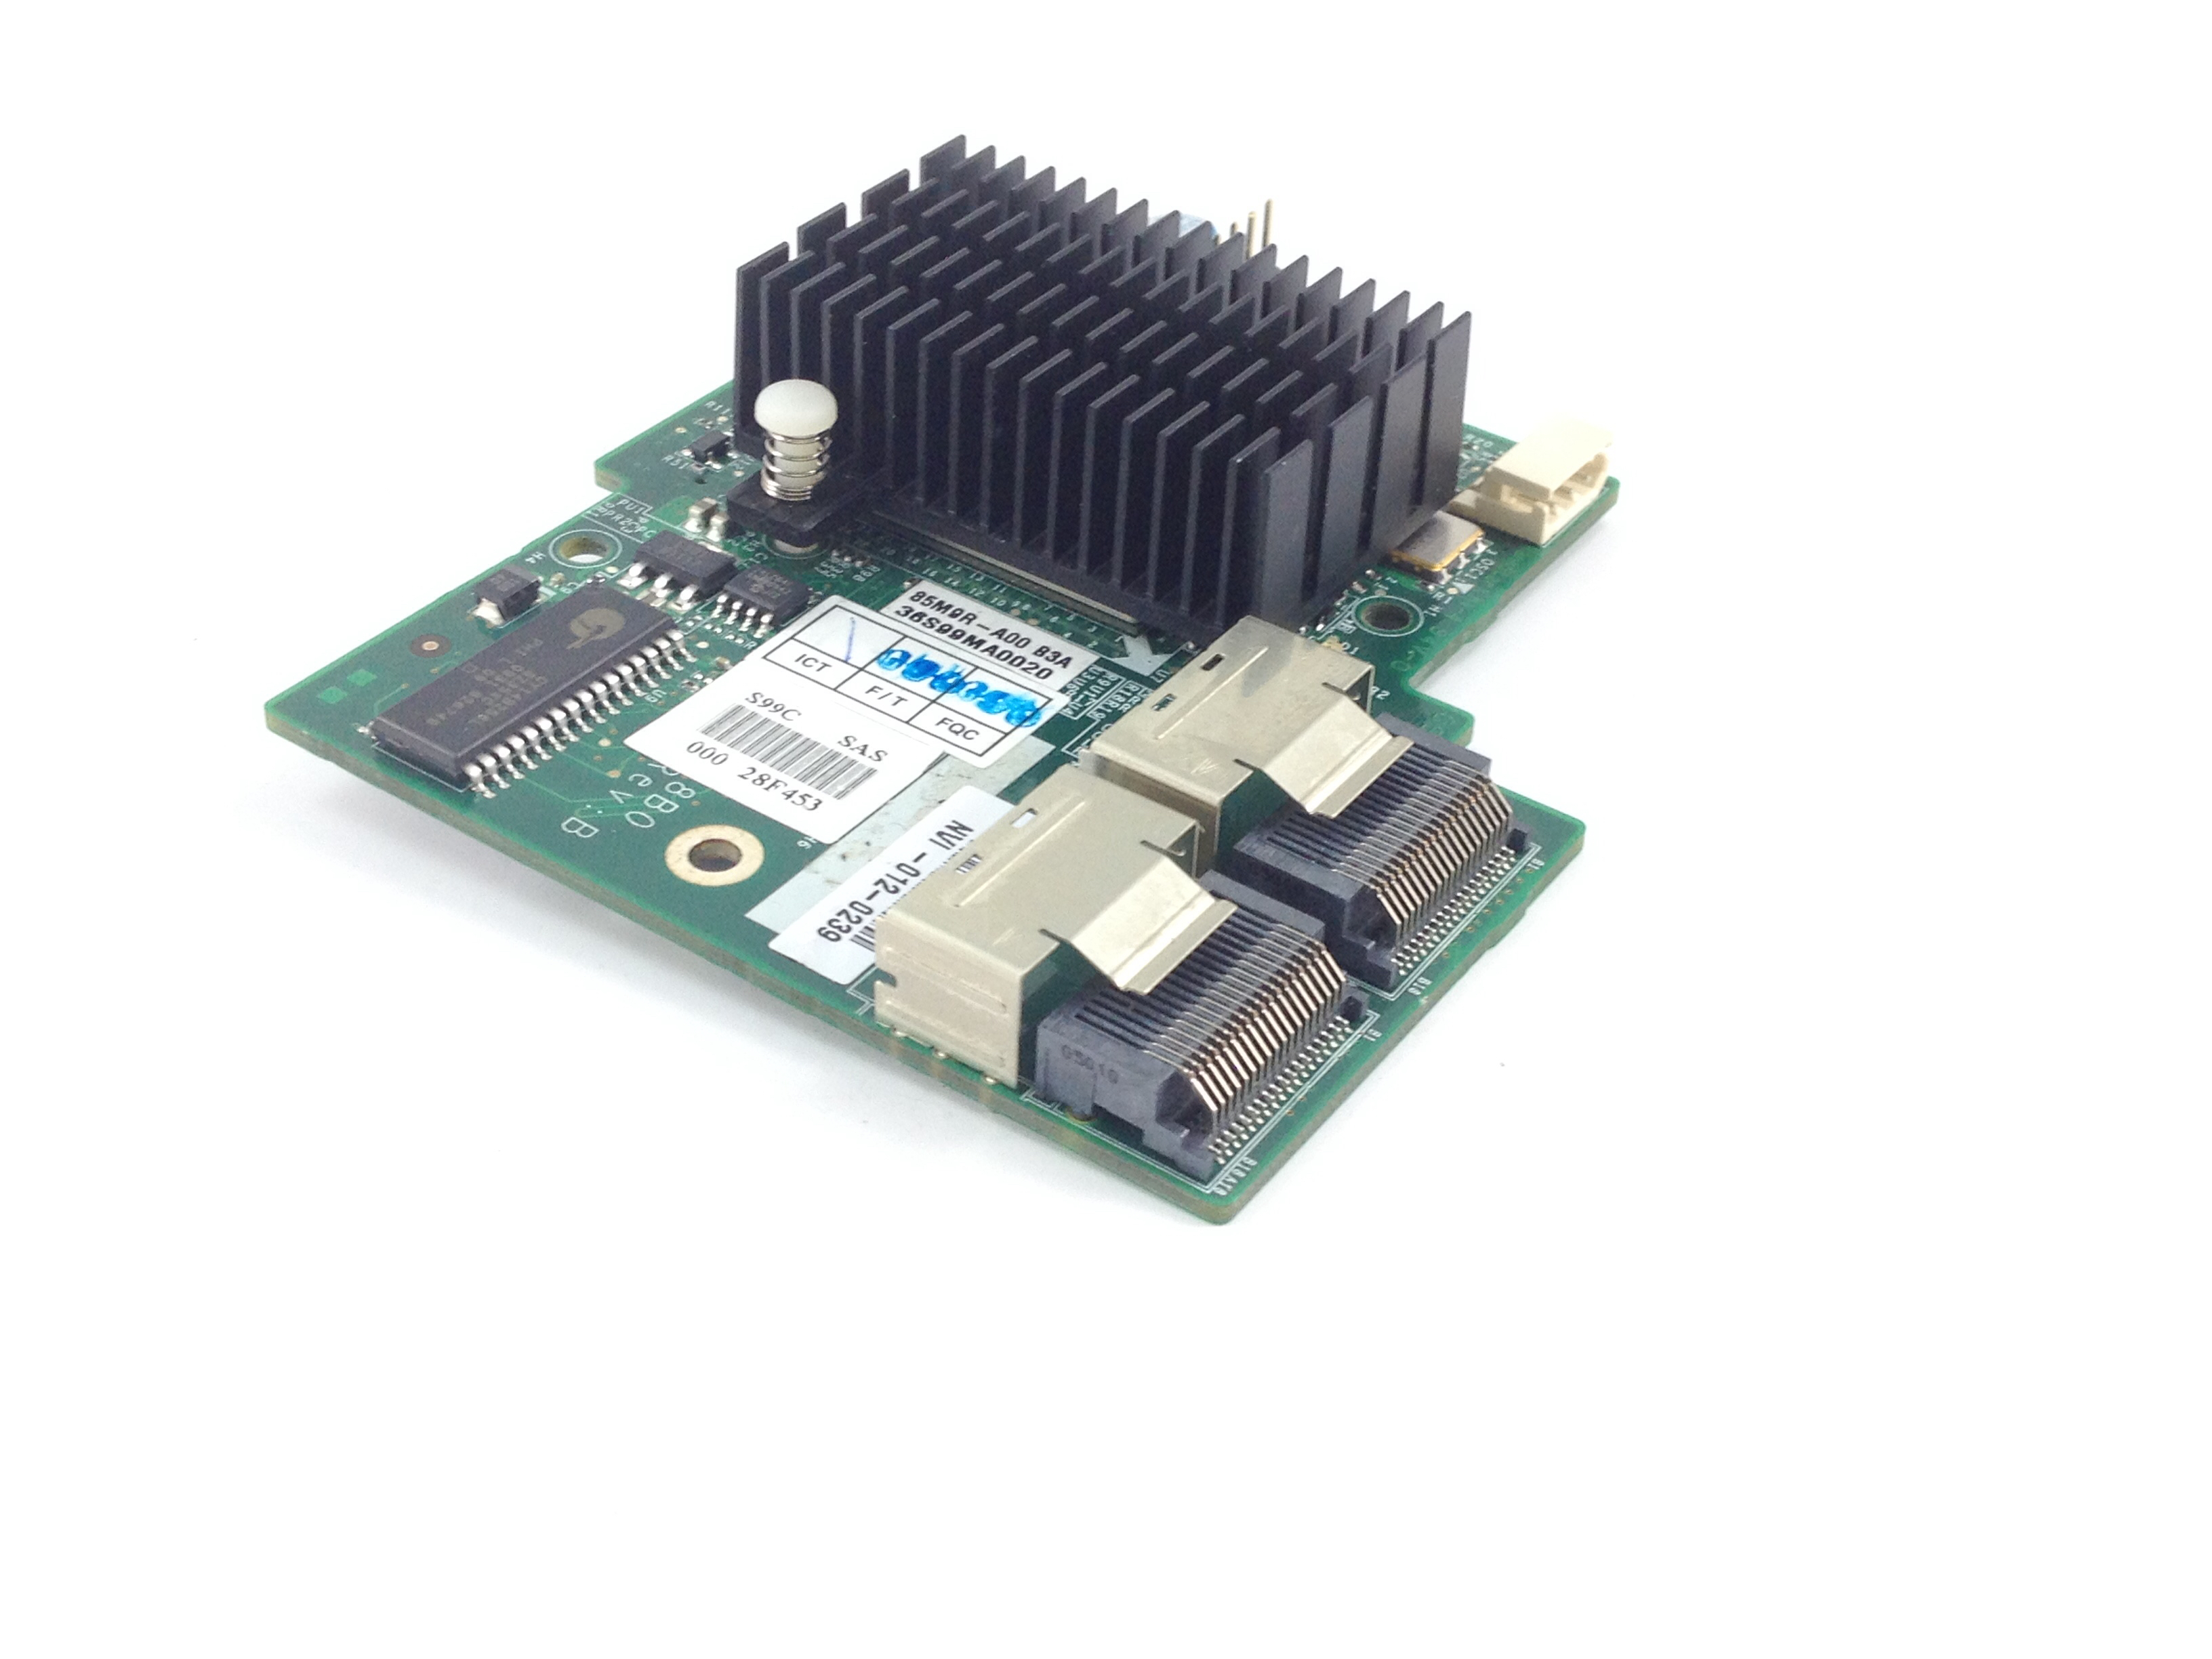 DELL POWEREDGE C1100 C2100 6GBPS SAS MEZZANINE CARD (85M9R)